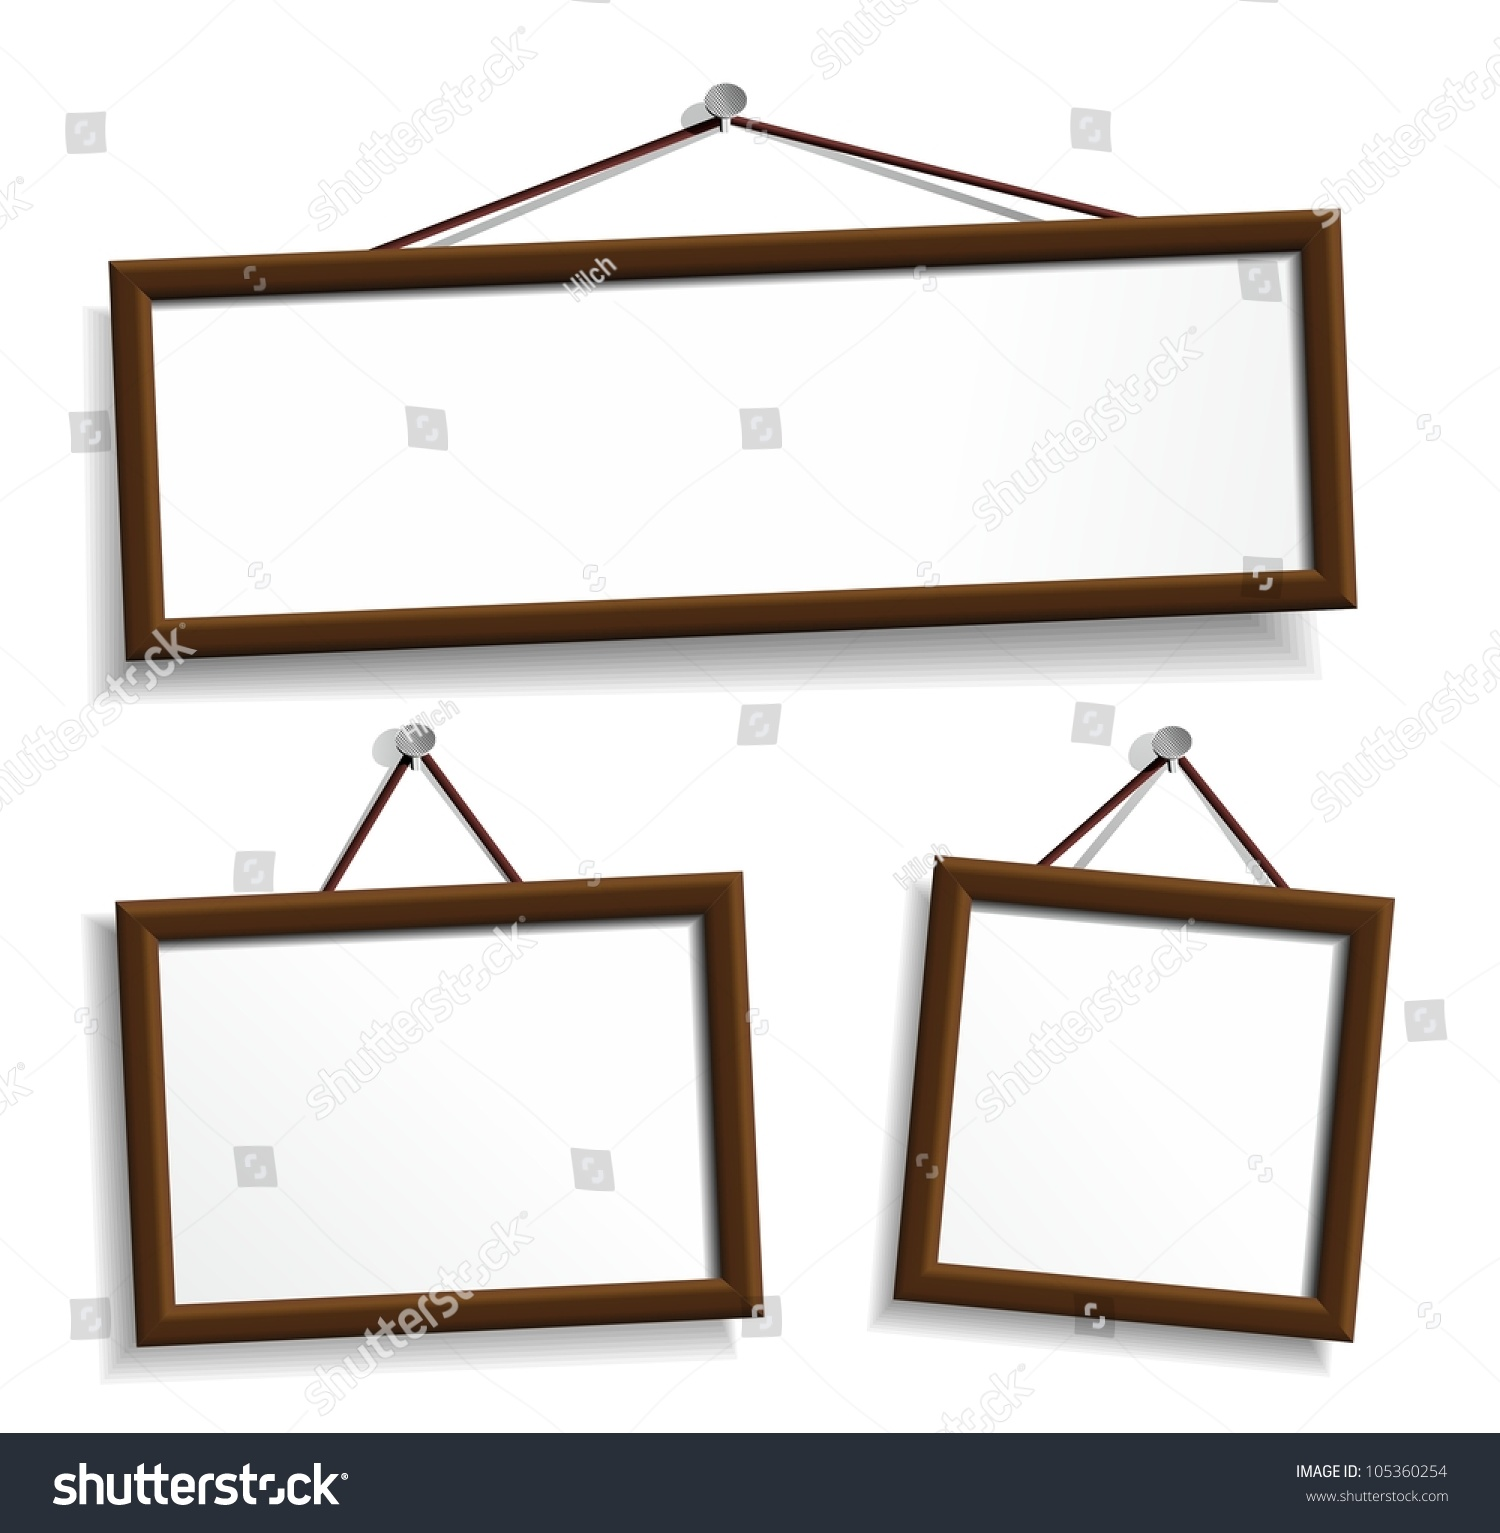 wooden frames hanging on a nails vector design elements isolated on white